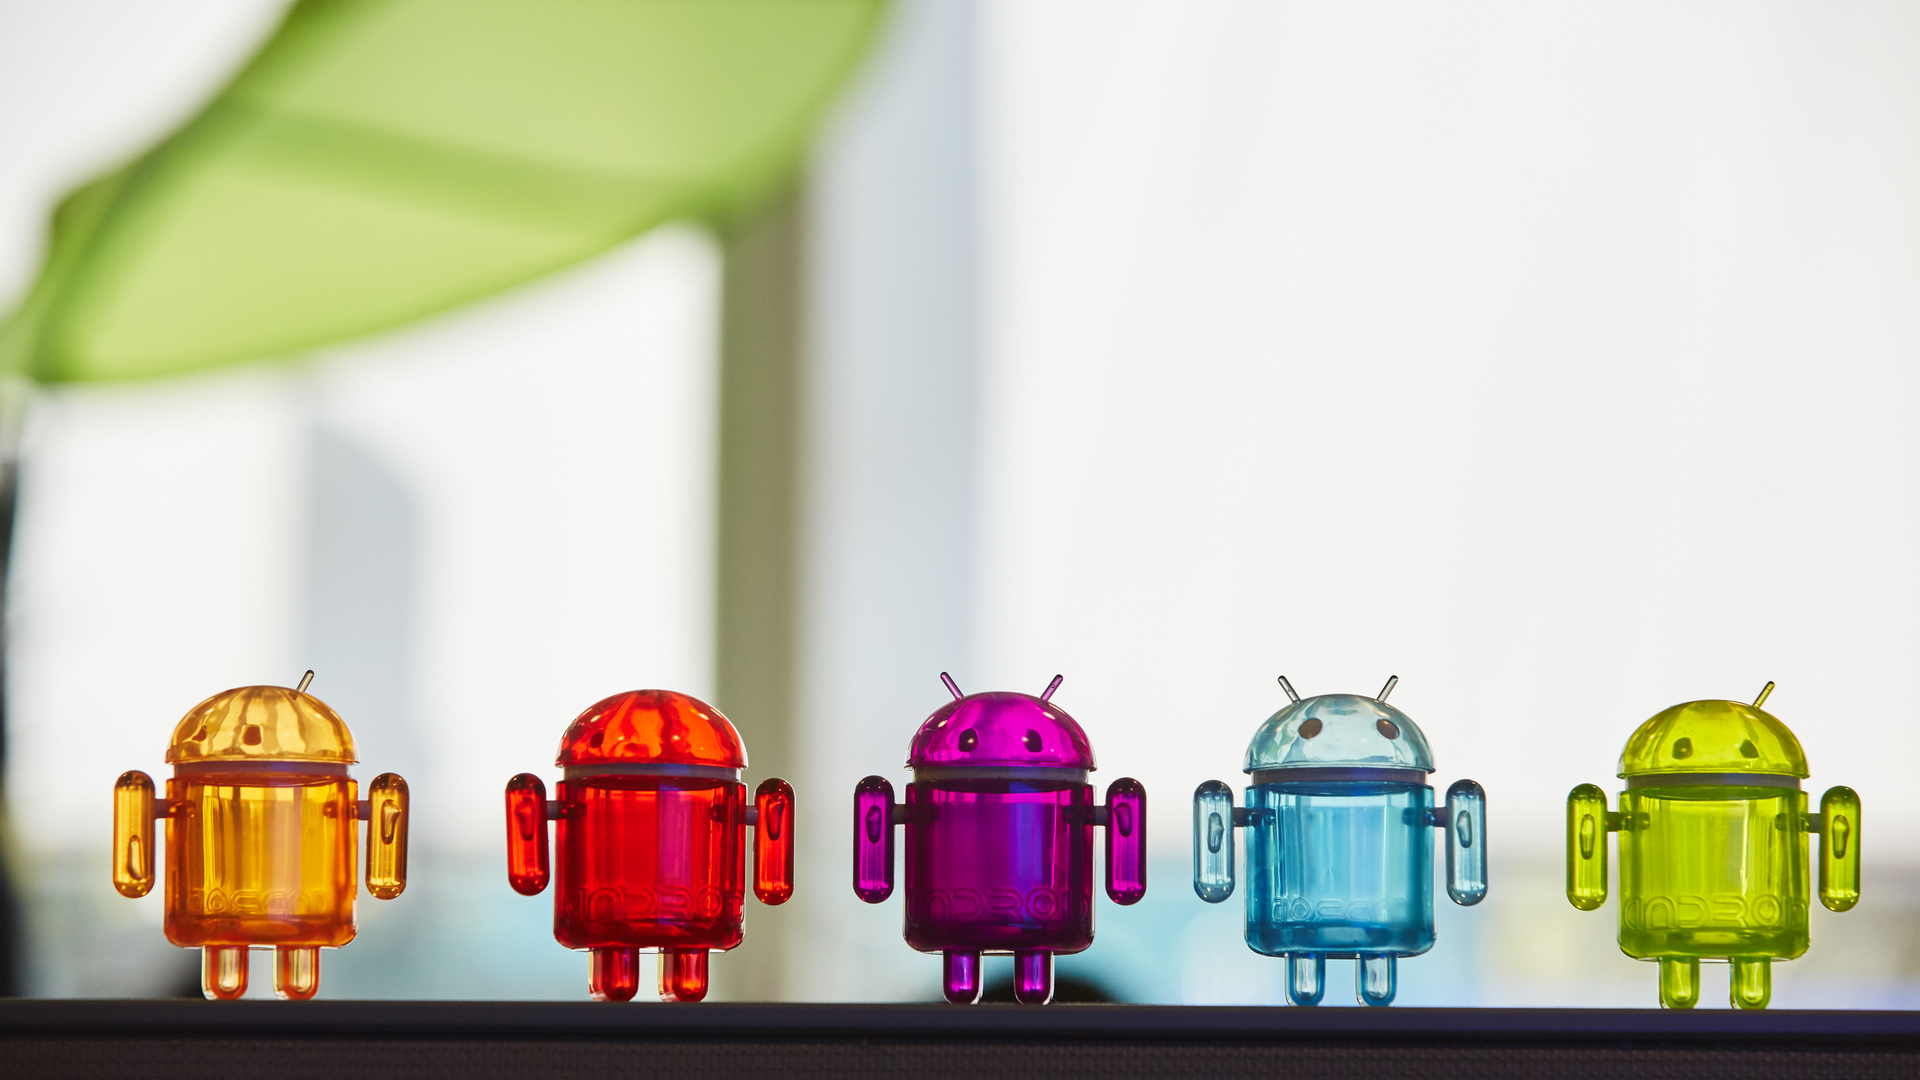 Some of Google's colorful Android toys as seen in a window